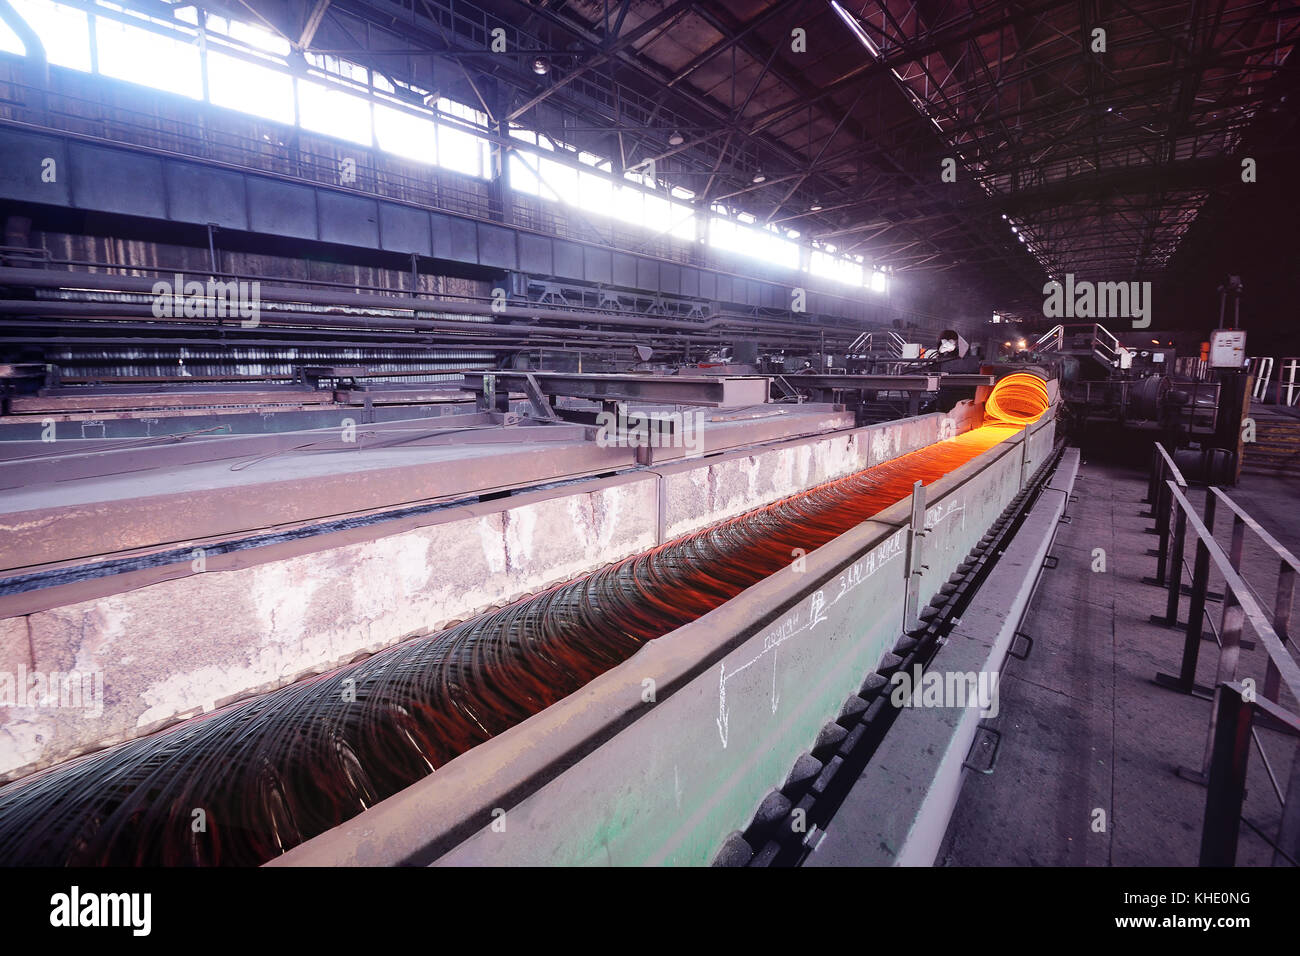 Production of metal wire rod at the metallurgical plant Stock Photo